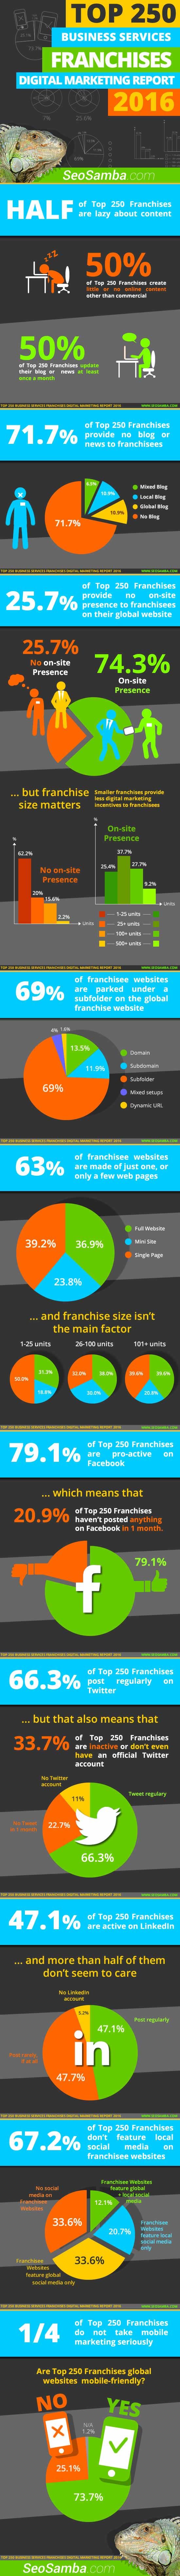 infographic top250 franchises digital marketing report 2016 seosamba